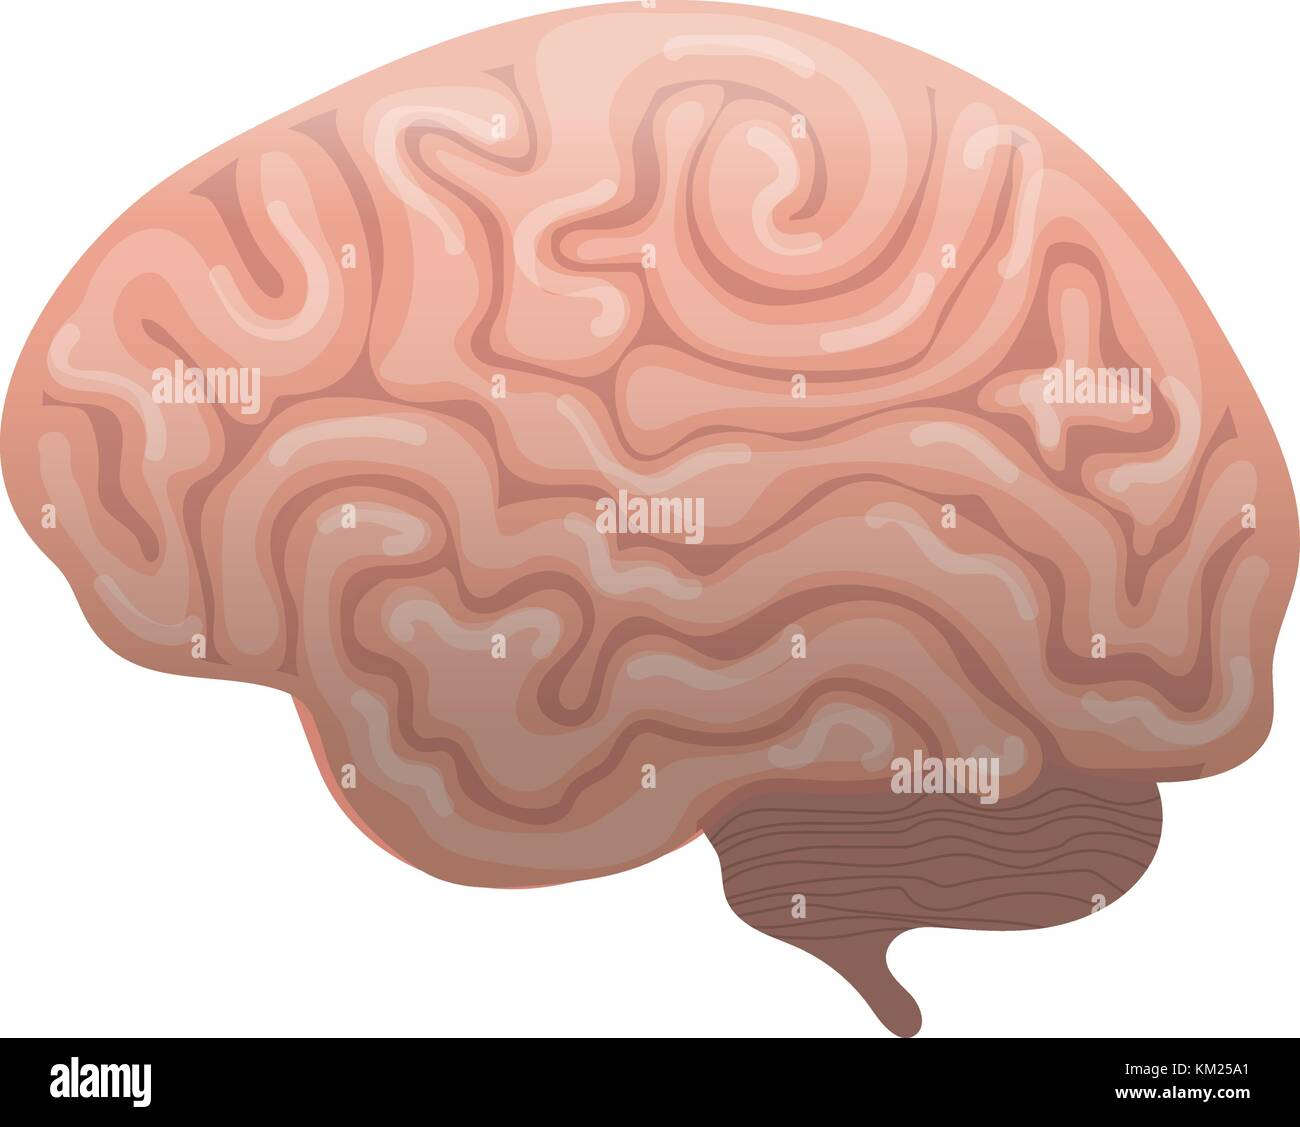 Human brain icon, flat style. Internal organs symbol the side view, isolated on white background. Vector illustration. - Stock Image